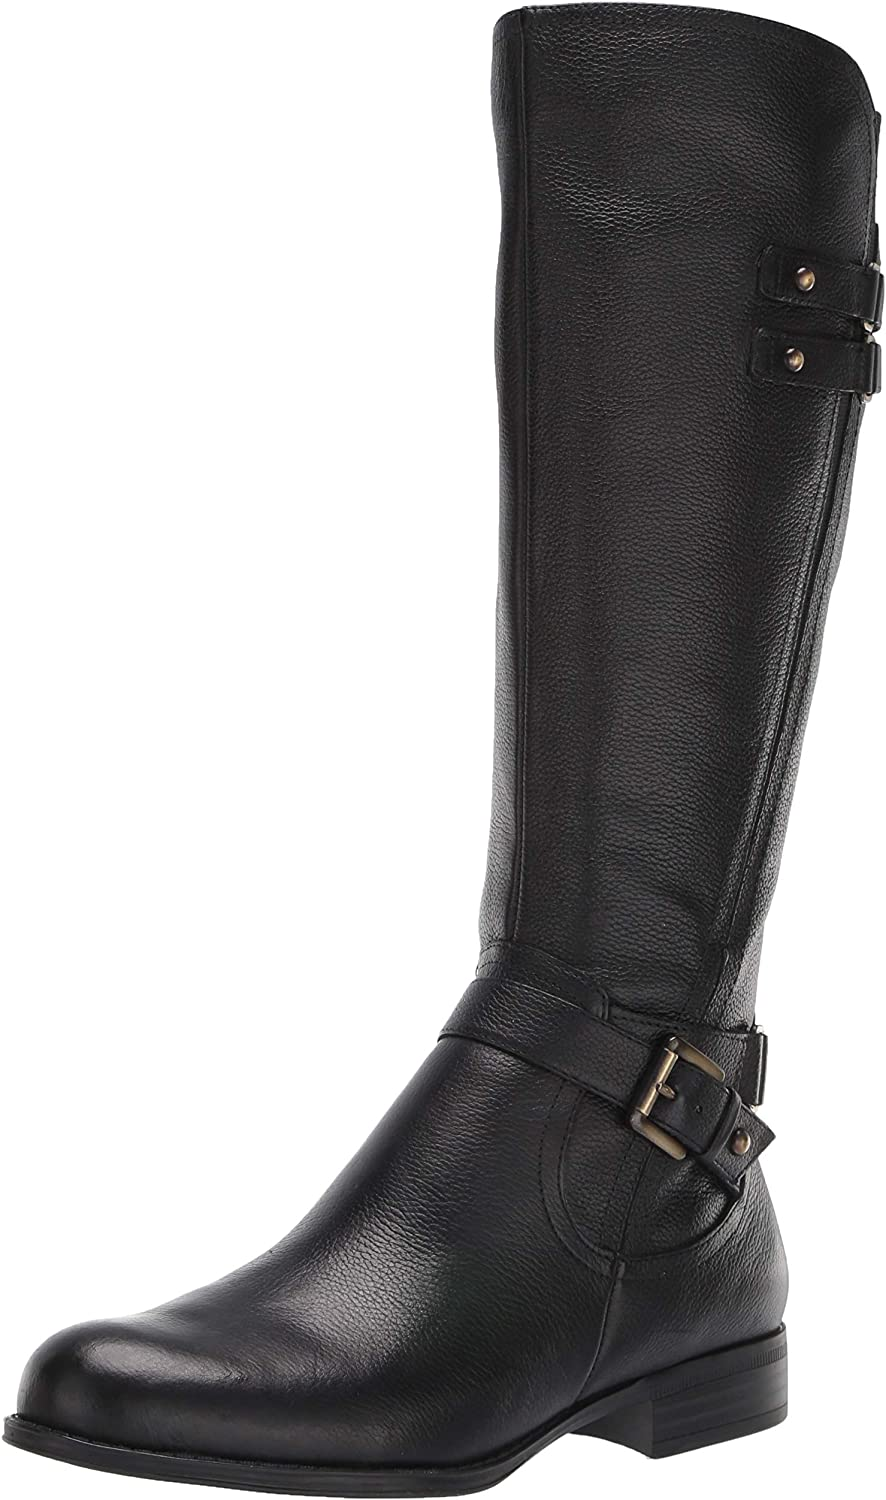 Naturalizer Special price for a limited time Women's Purchase Jackie Boot High Knee